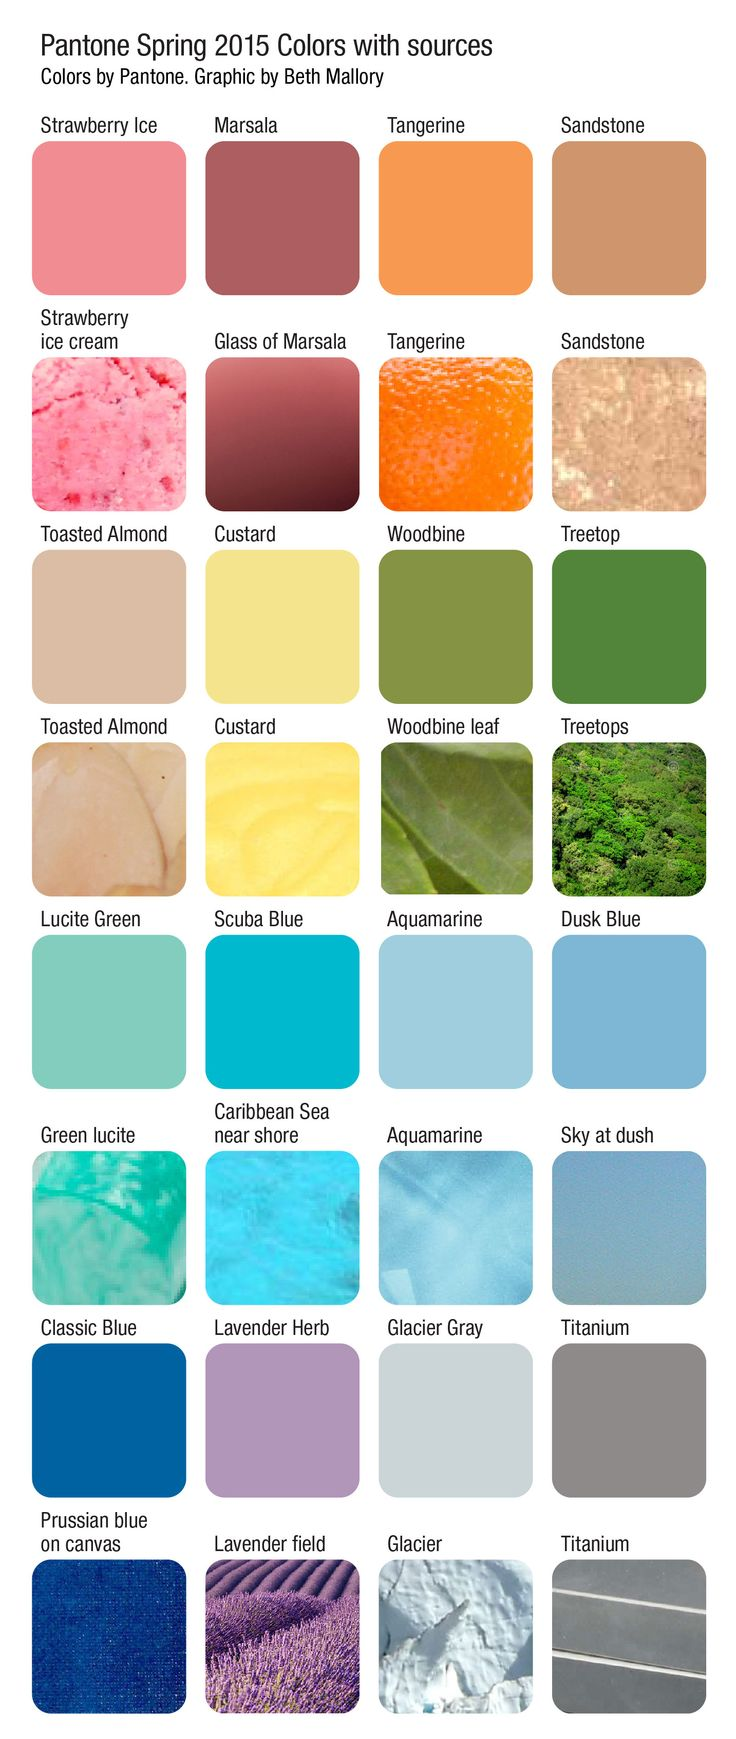 Color trends in 2015 - Pantone Spring 2015 Colors With Sources From Photos